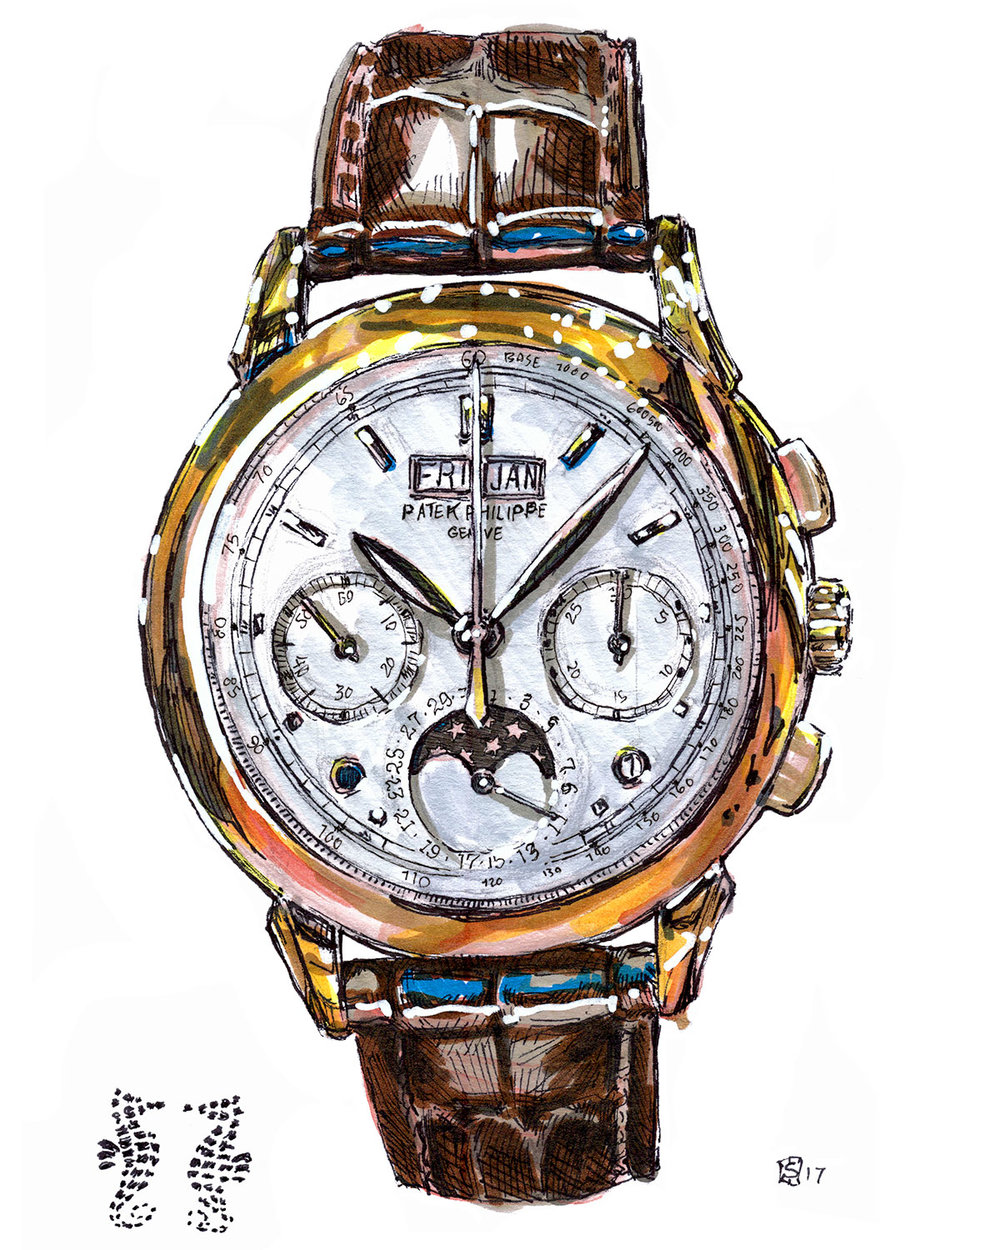 Patek Philippe 5270R 001 Moonphase illustration